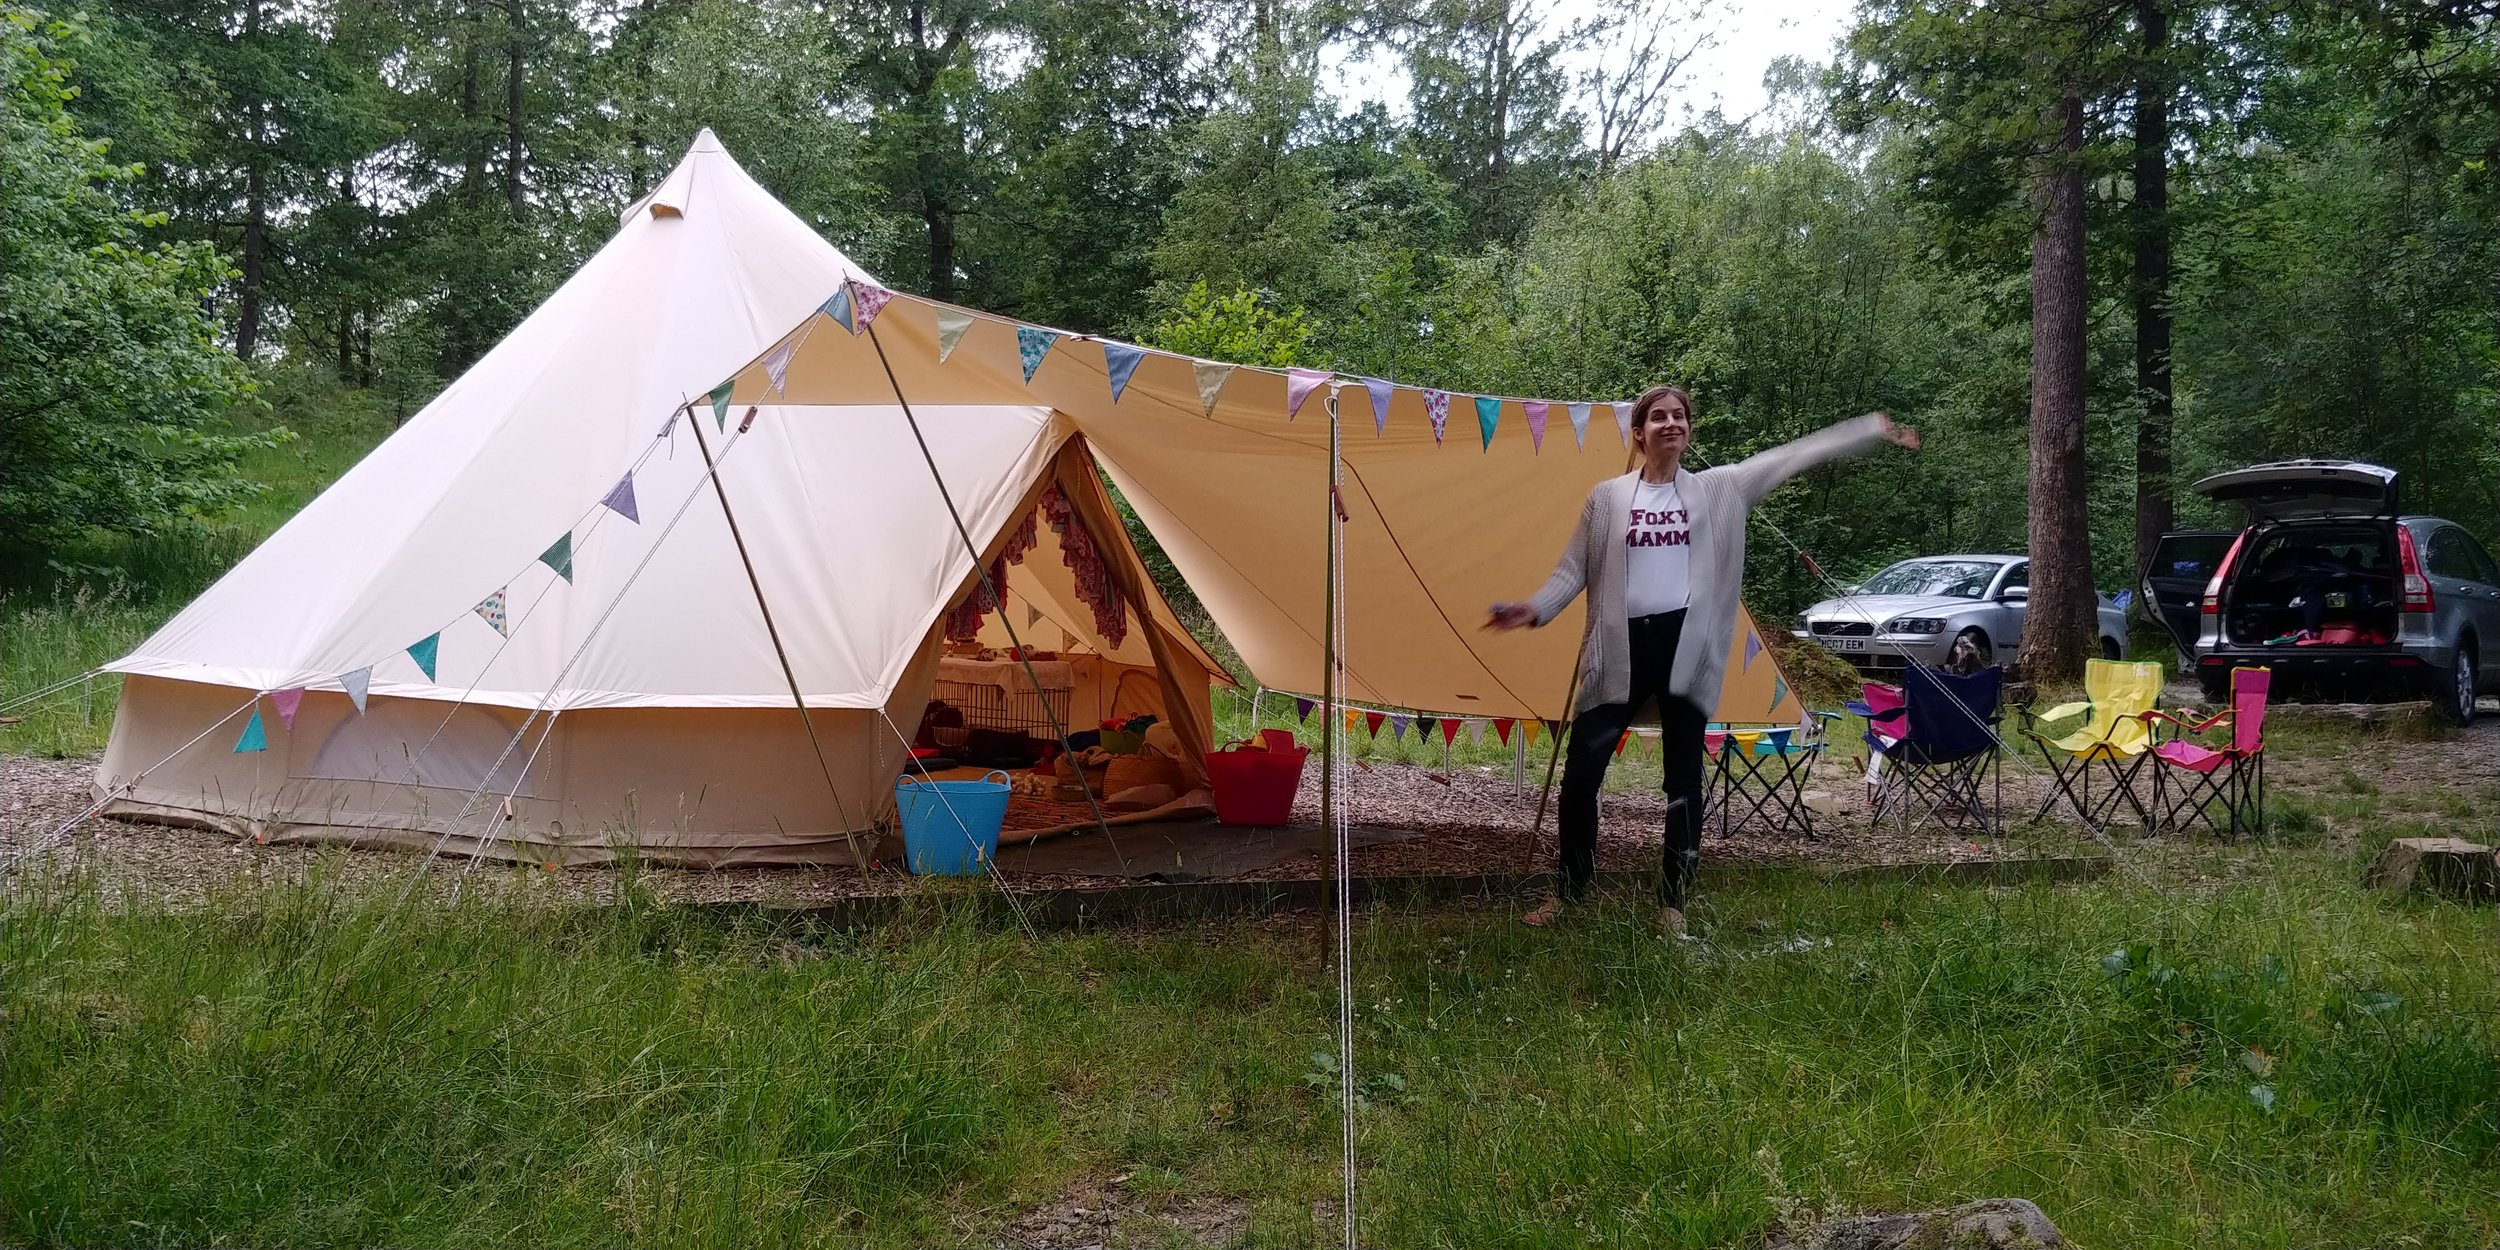 Pleased with my pitching abilities. Look at those perfectly smooth sides :-)